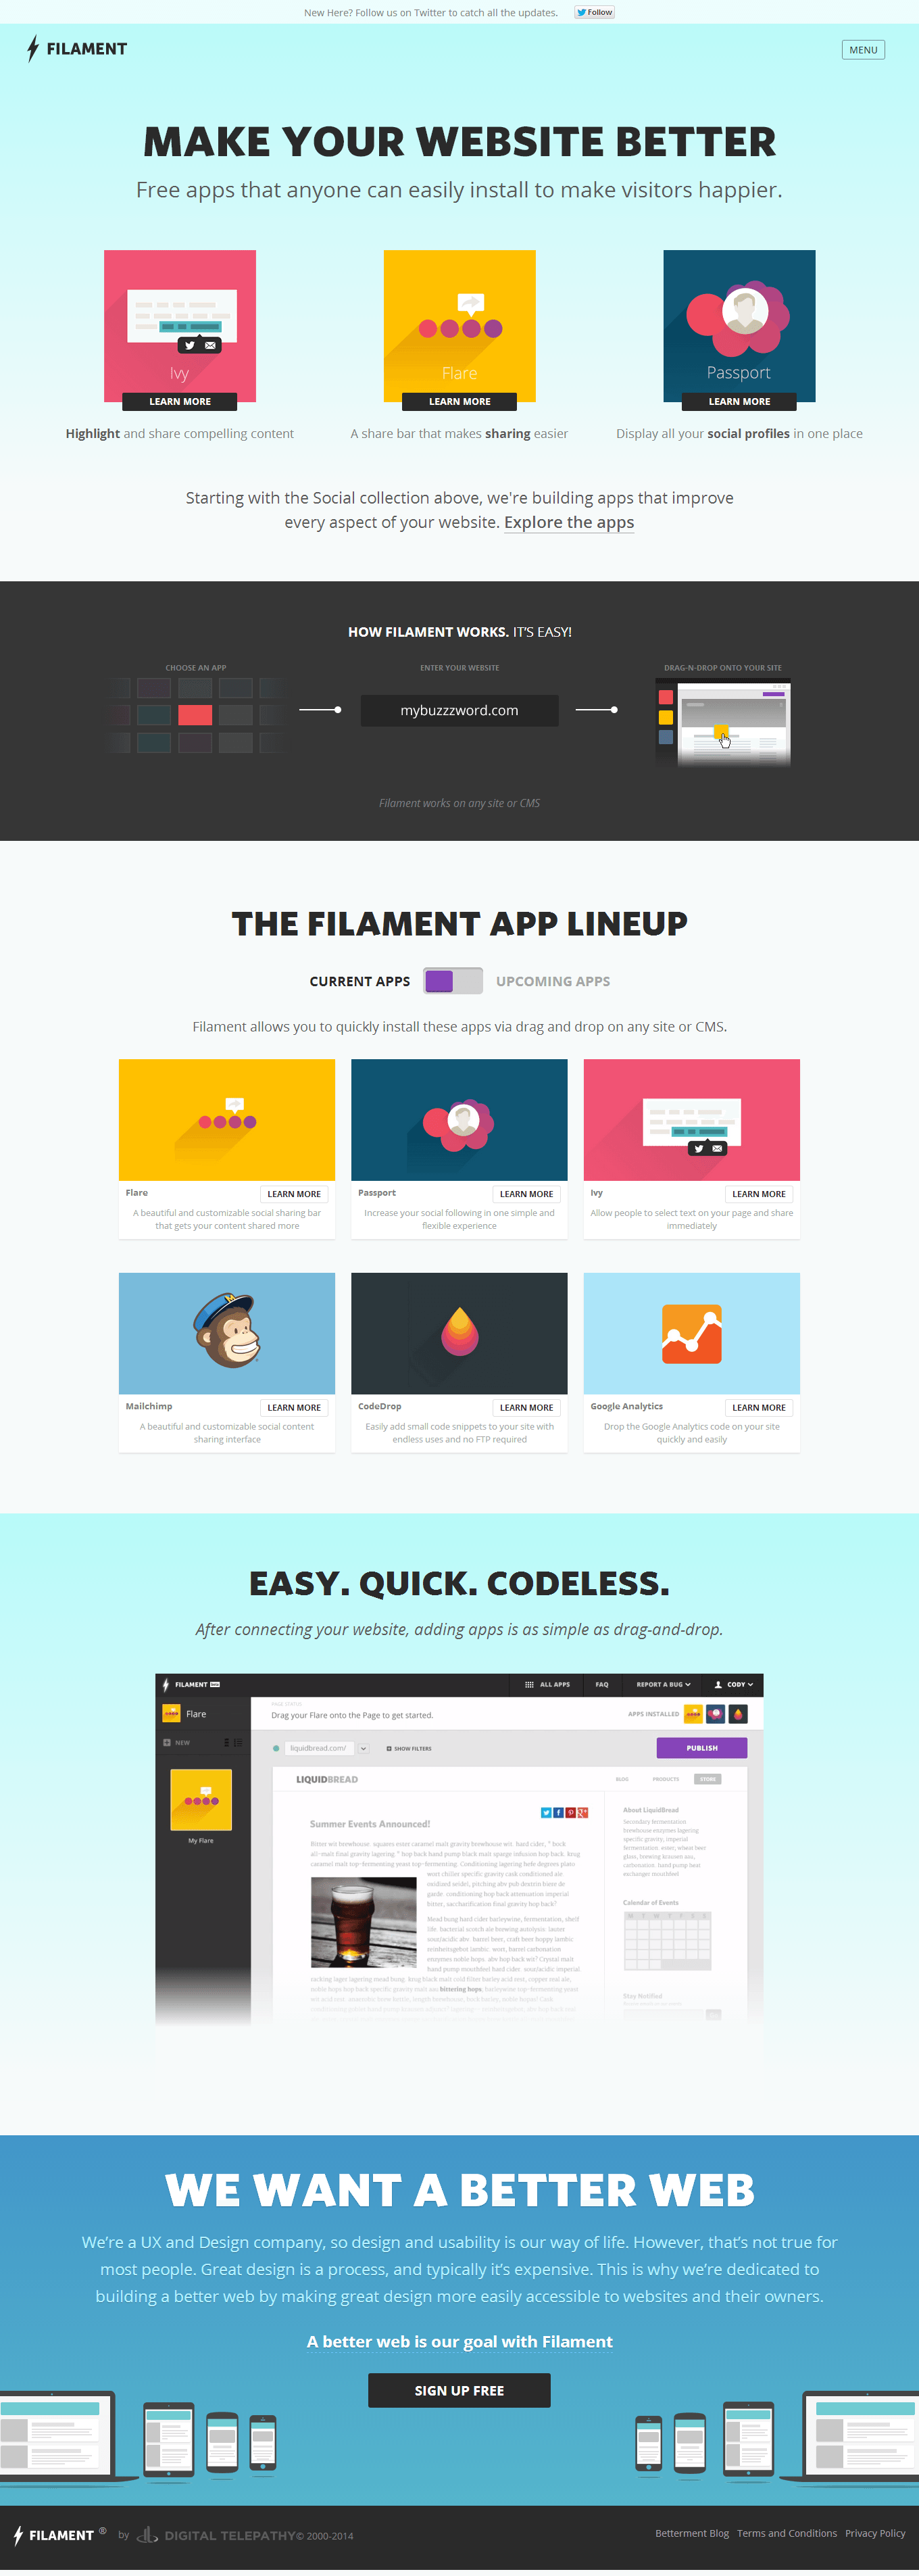 Filament - Apps anyone can install to make website visitors happier